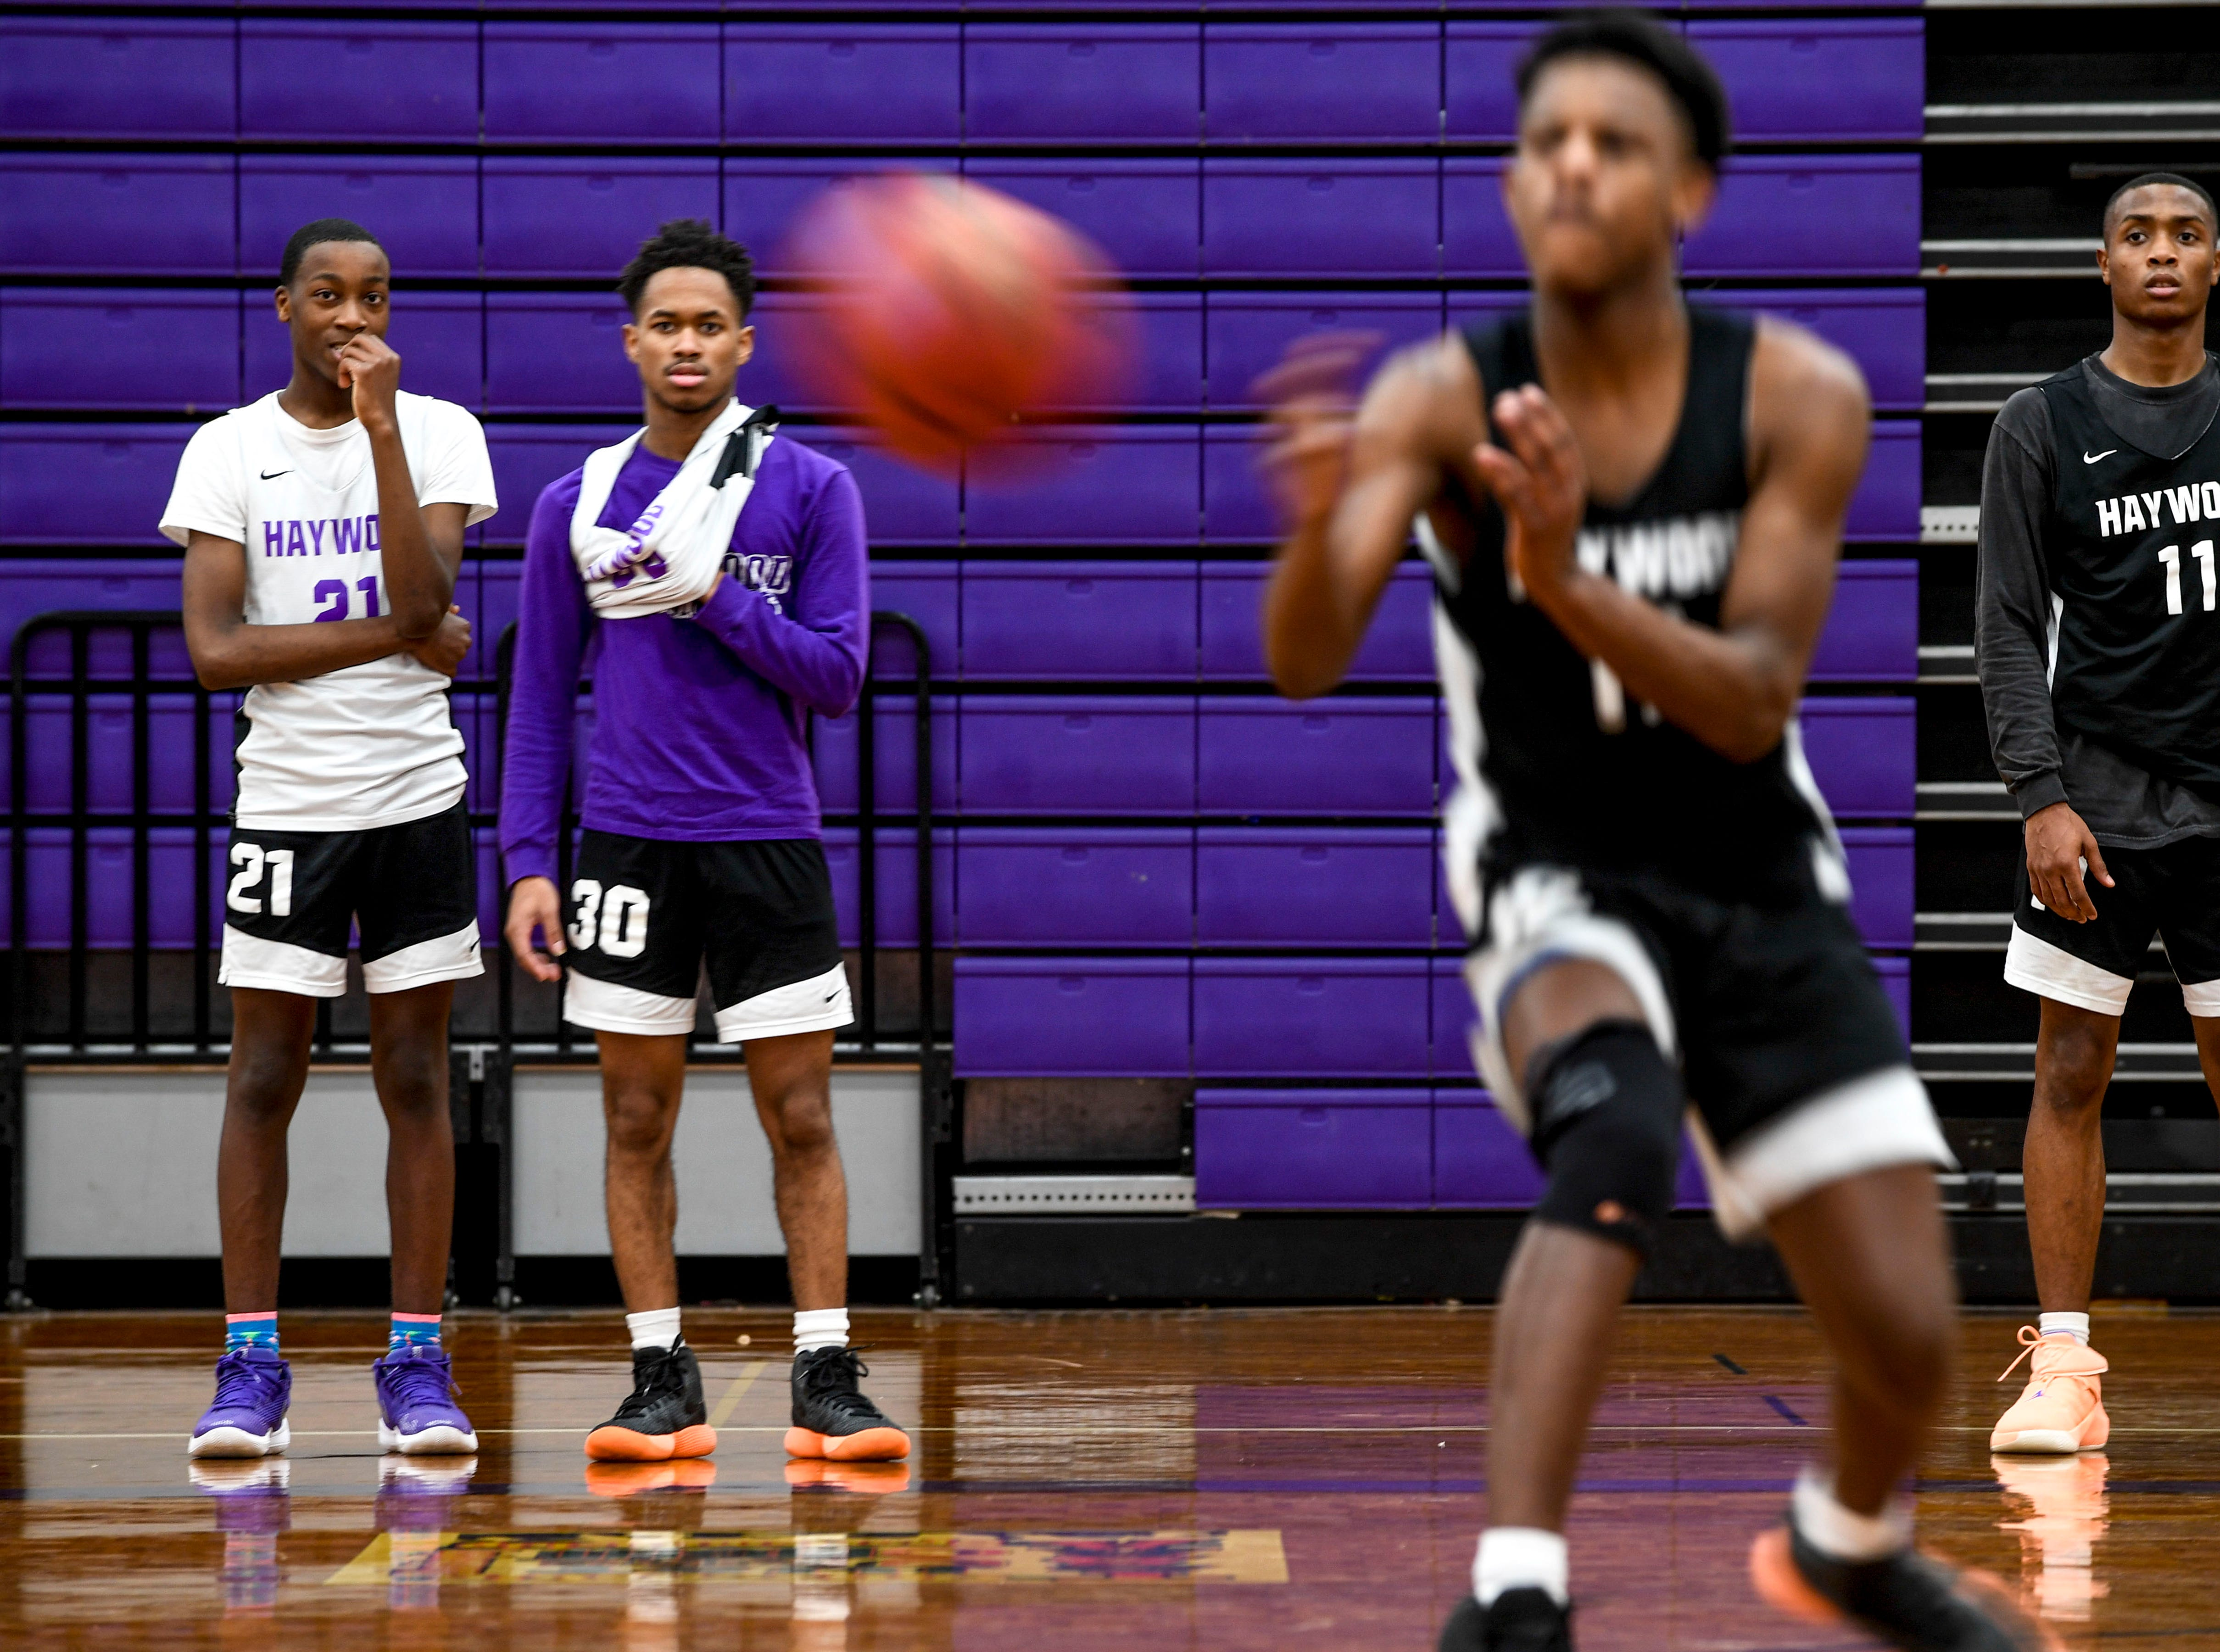 Players watch from the sidelines while their teammates practice a 5v5 game during basketball practice at Haywood High School in Brownsville, Tenn., on Wednesday, Jan. 2, 2019.